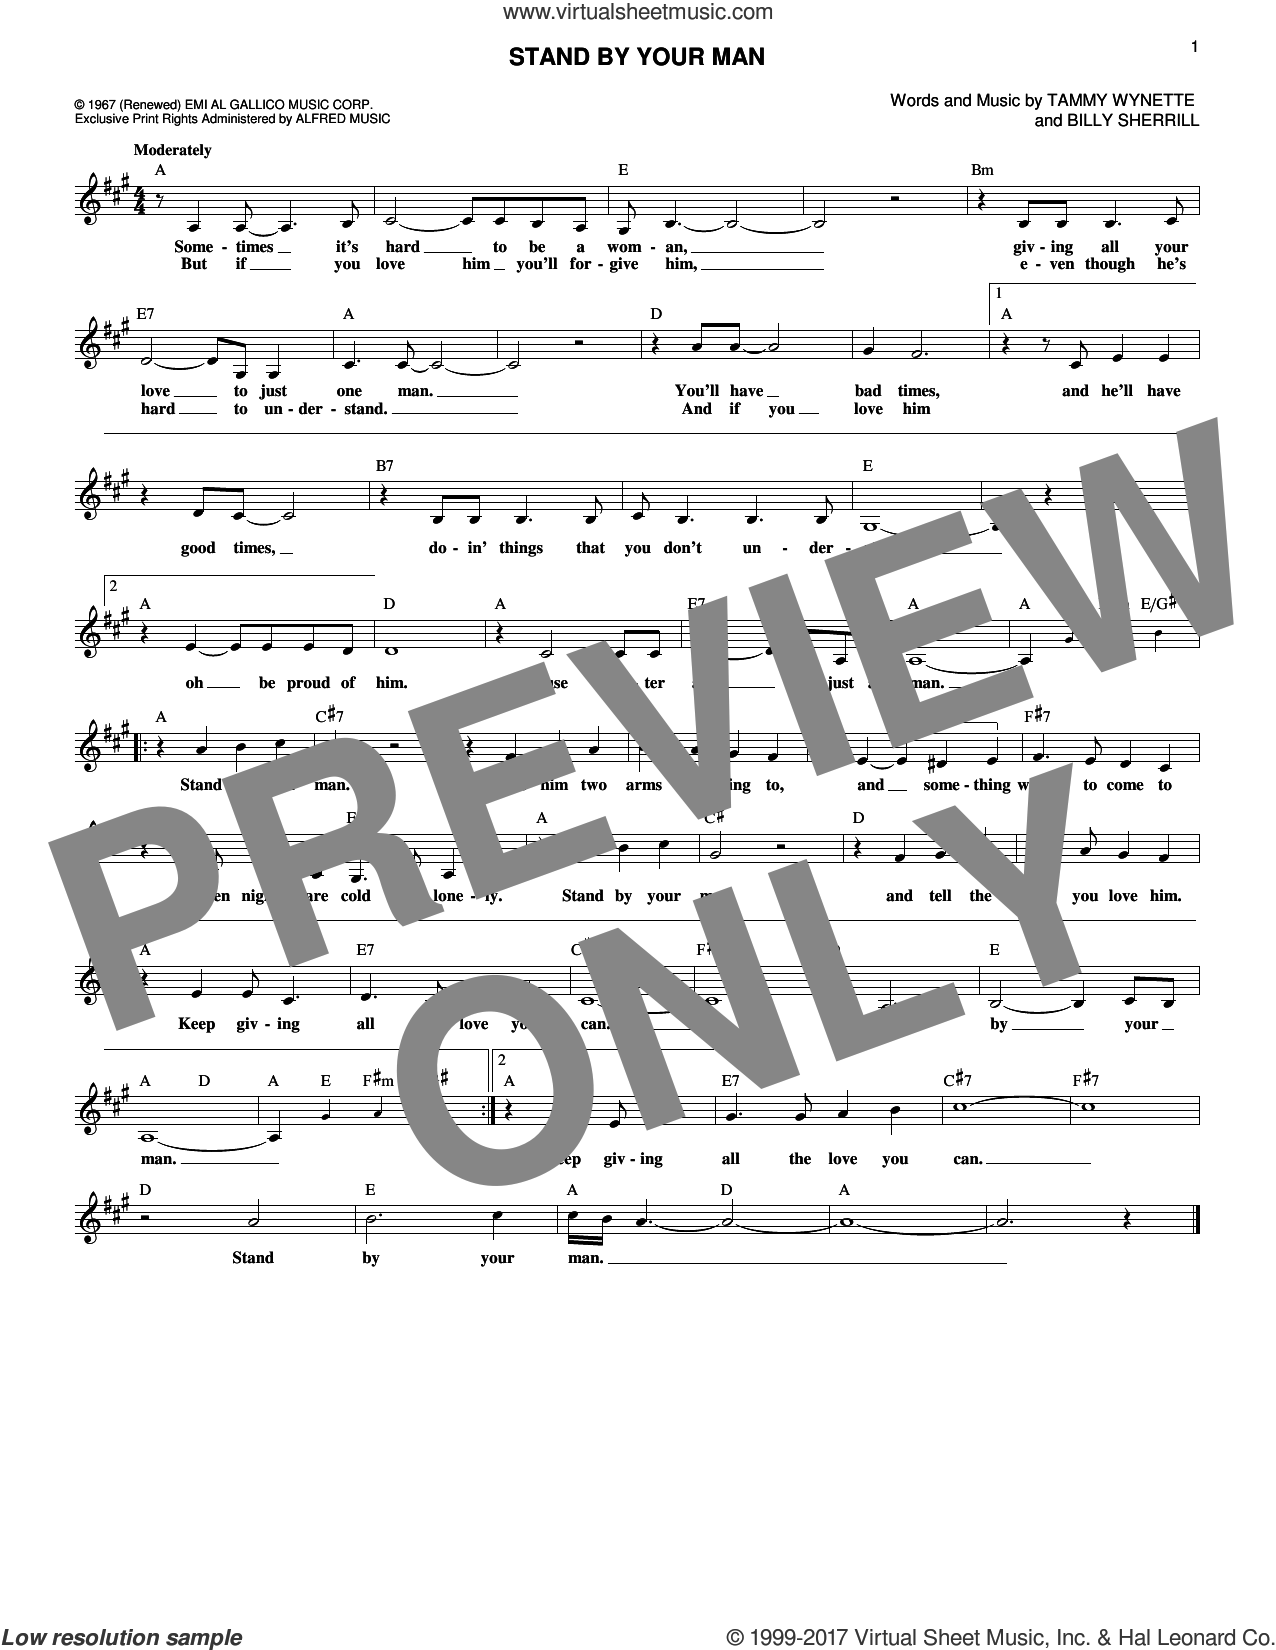 Stand By Your Man sheet music for voice and other instruments (fake book) by Tammy Wynette and Billy Sherrill, intermediate skill level